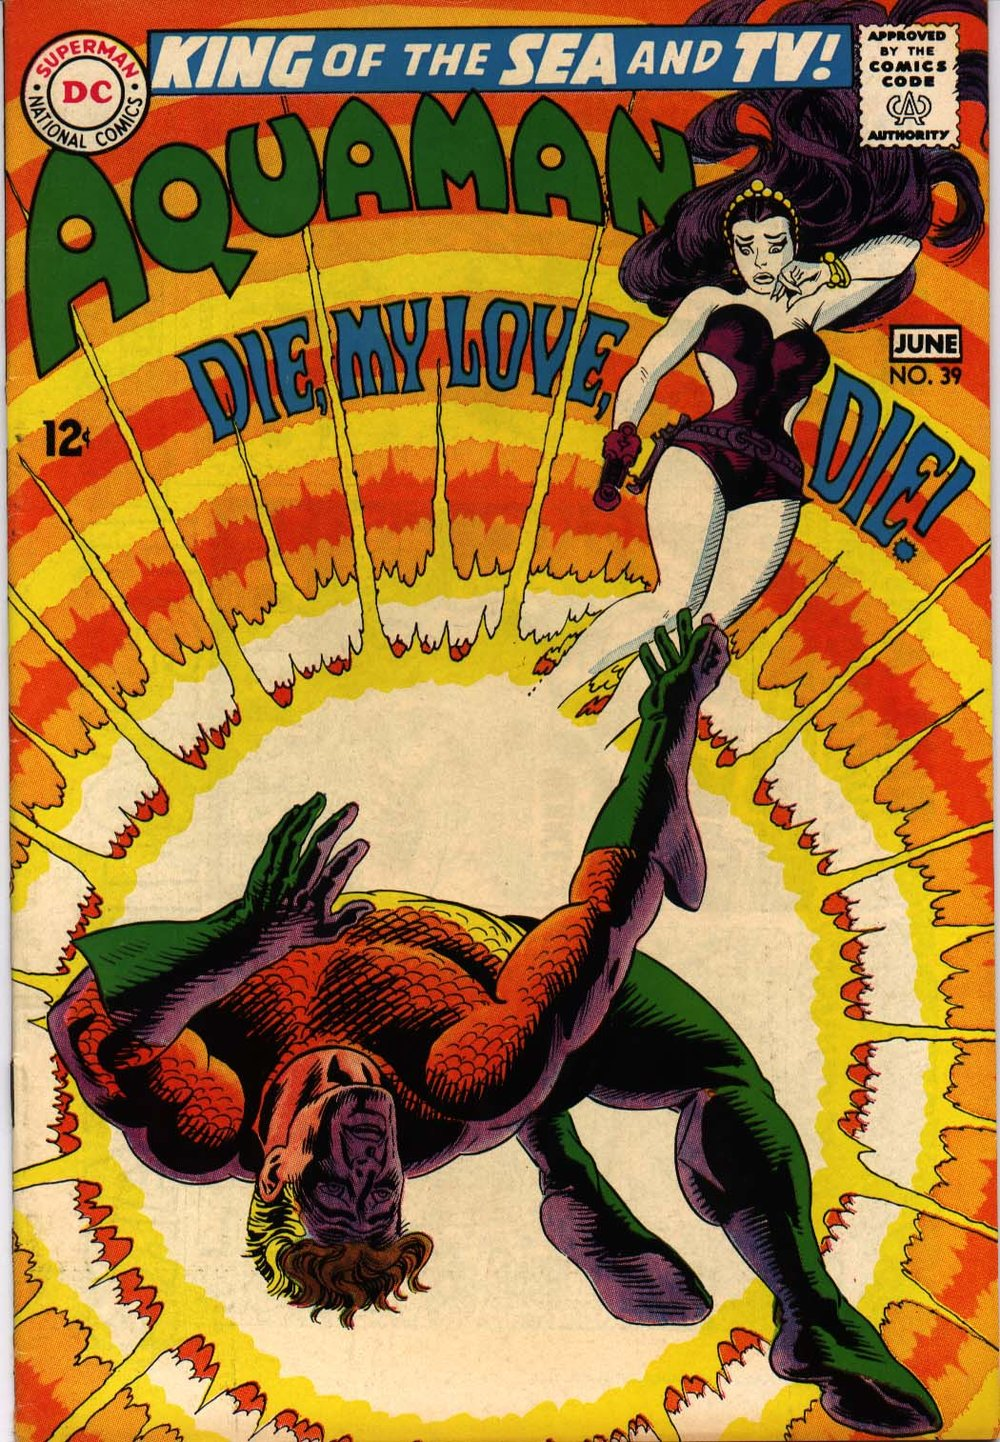 Aquaman (1962) #39, cover by Nick Cardy.